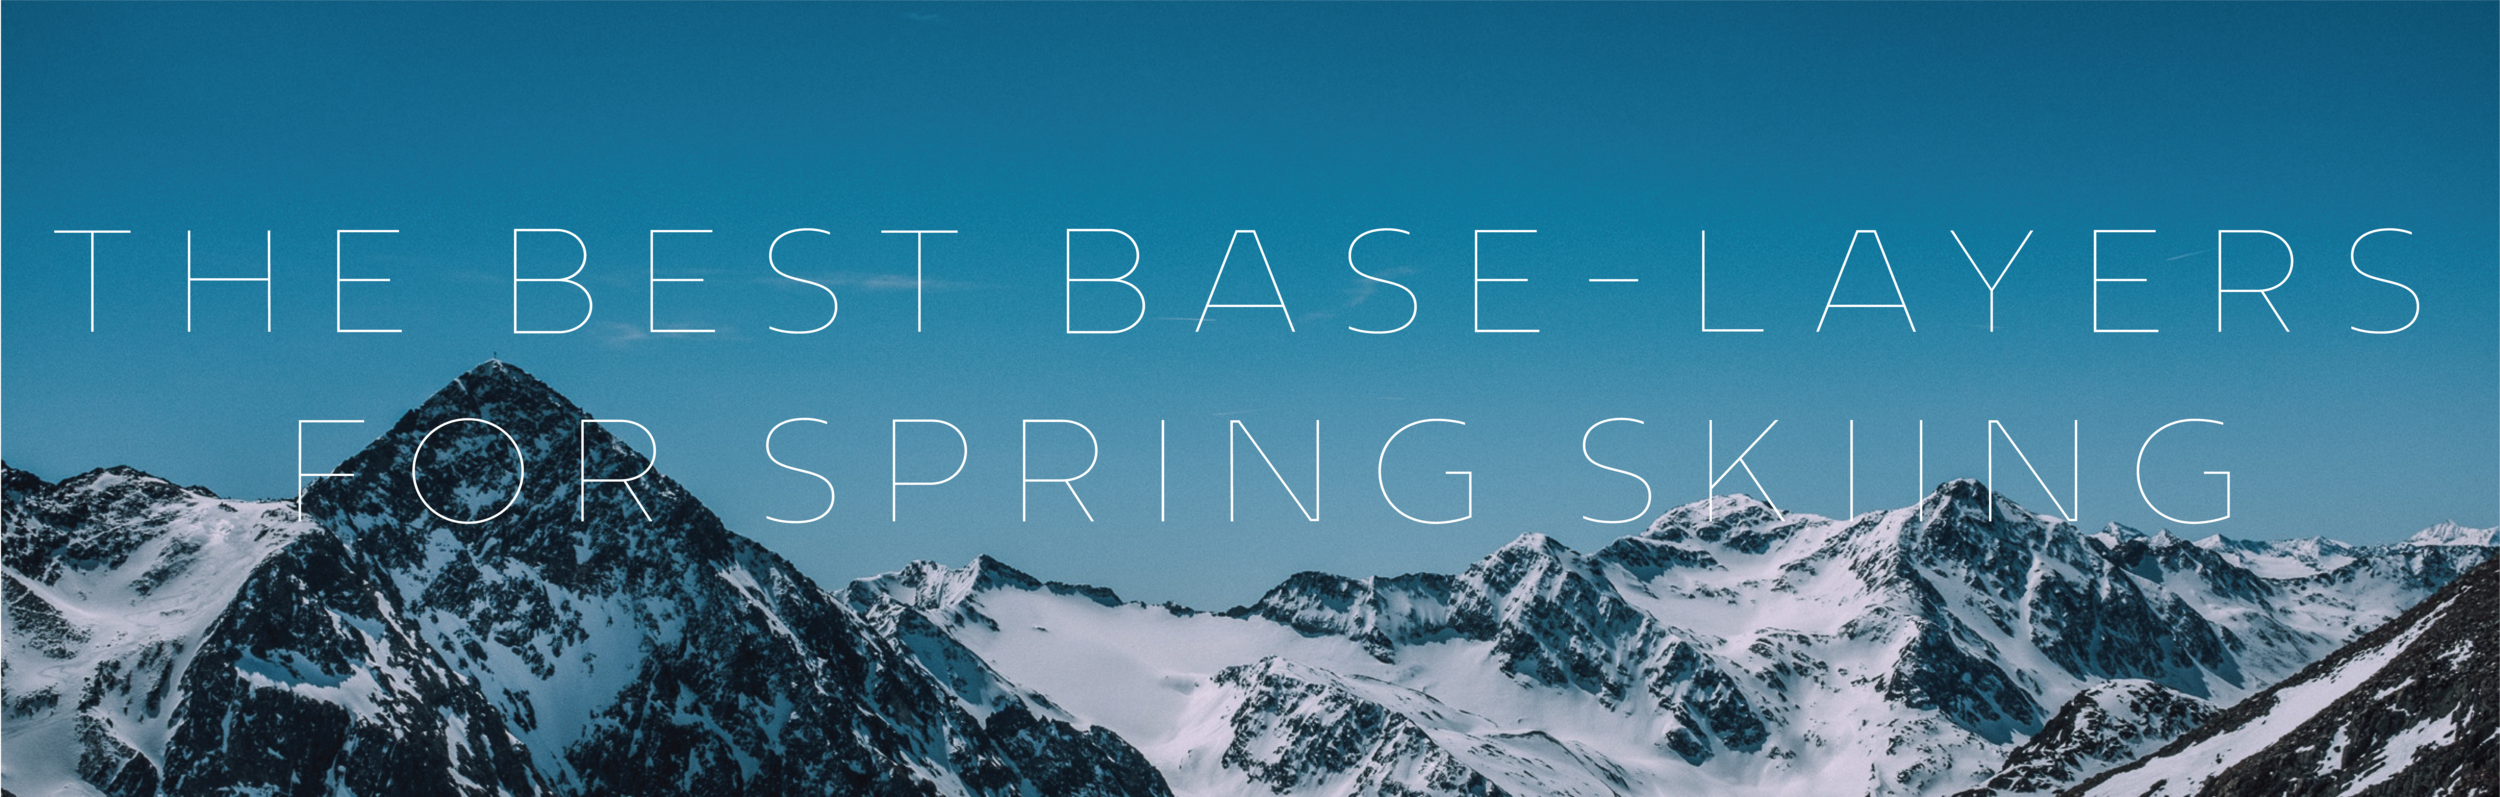 best baselayers for spring skiing.png